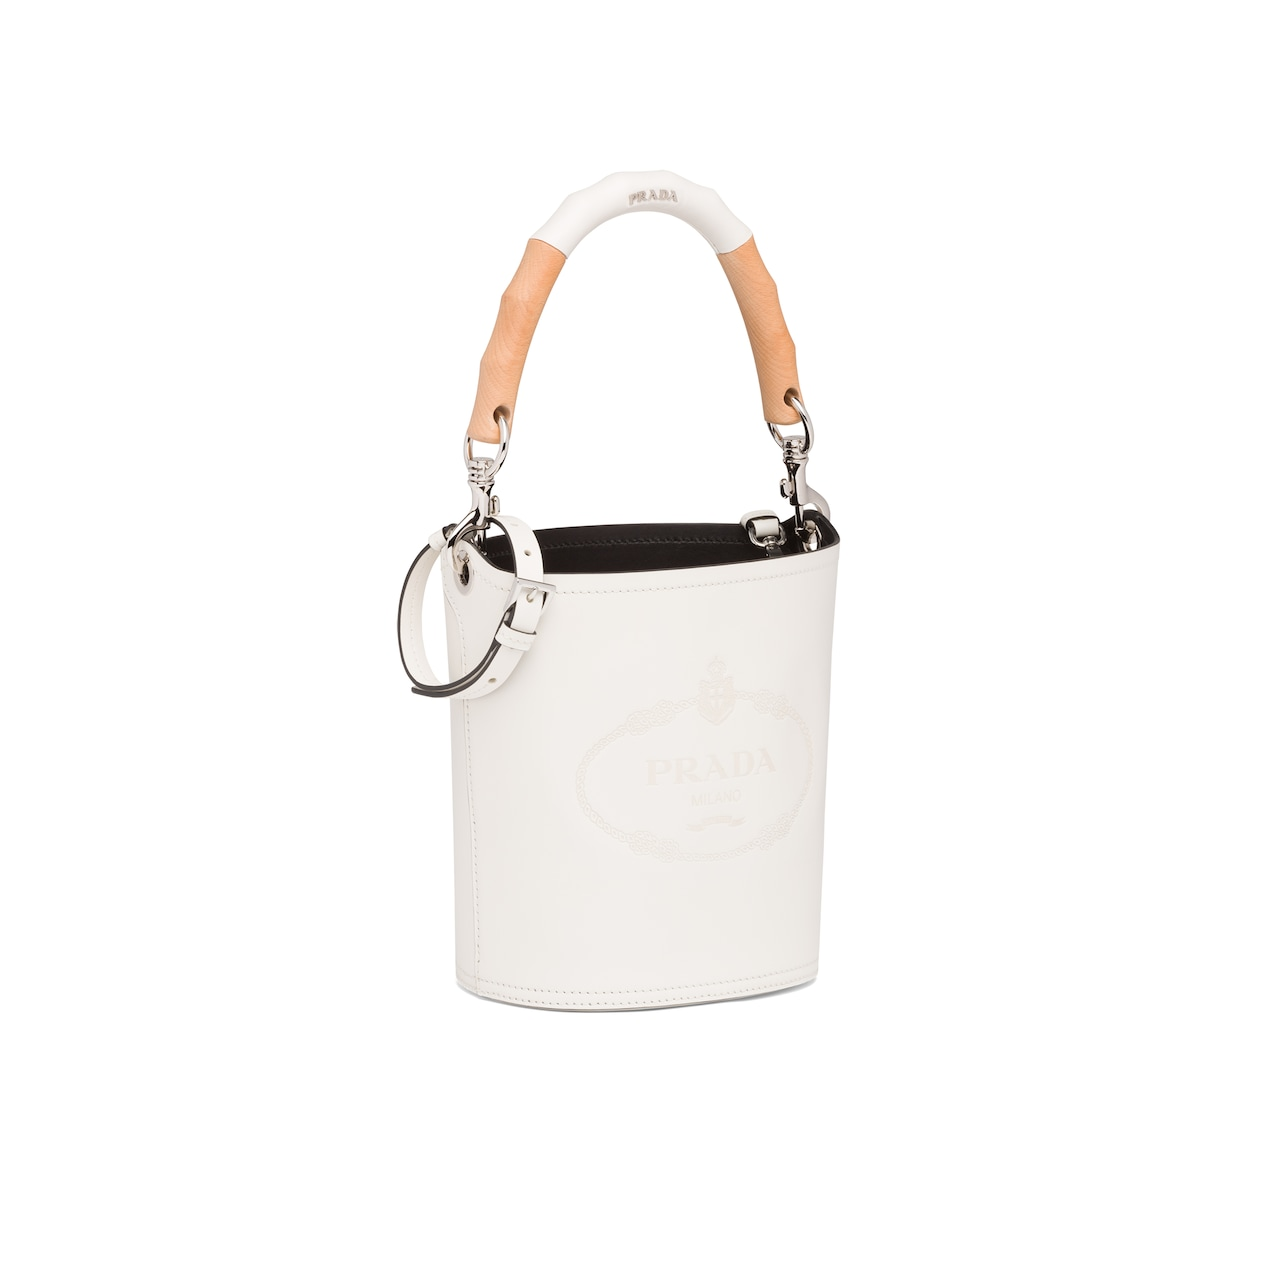 Prada Leather bucket bag with wooden handle 3